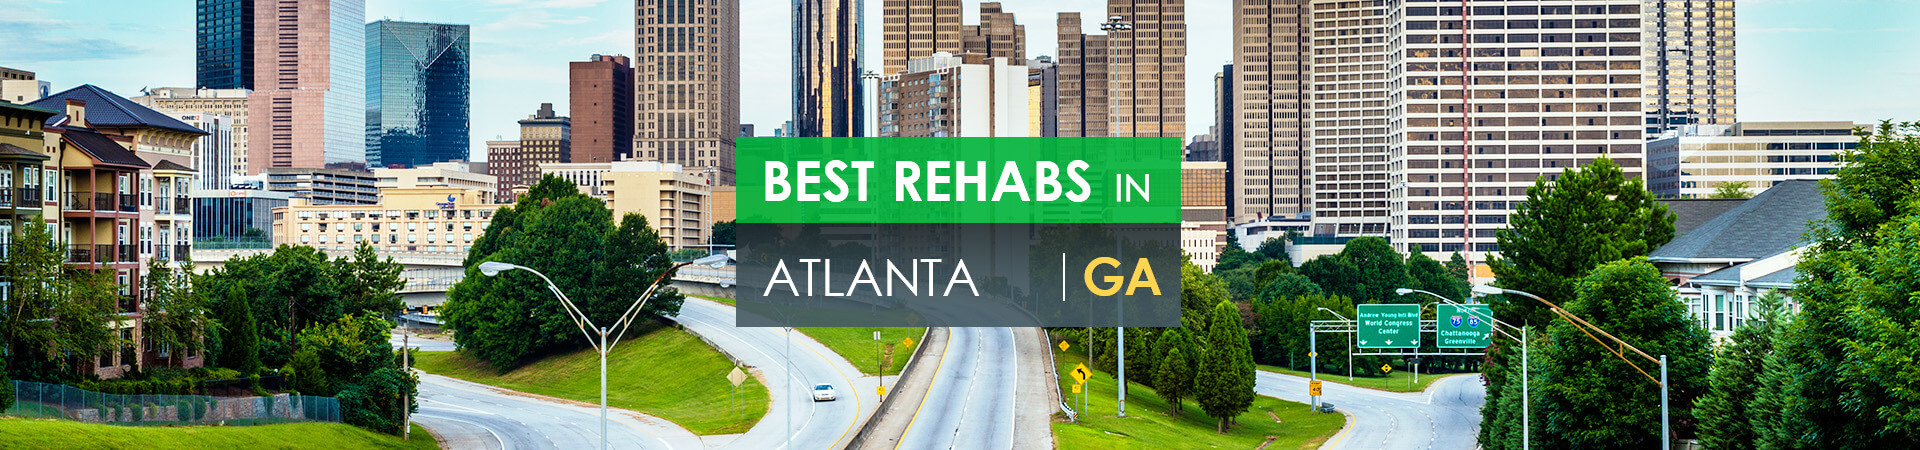 Best rehabs in Atlanta, GA